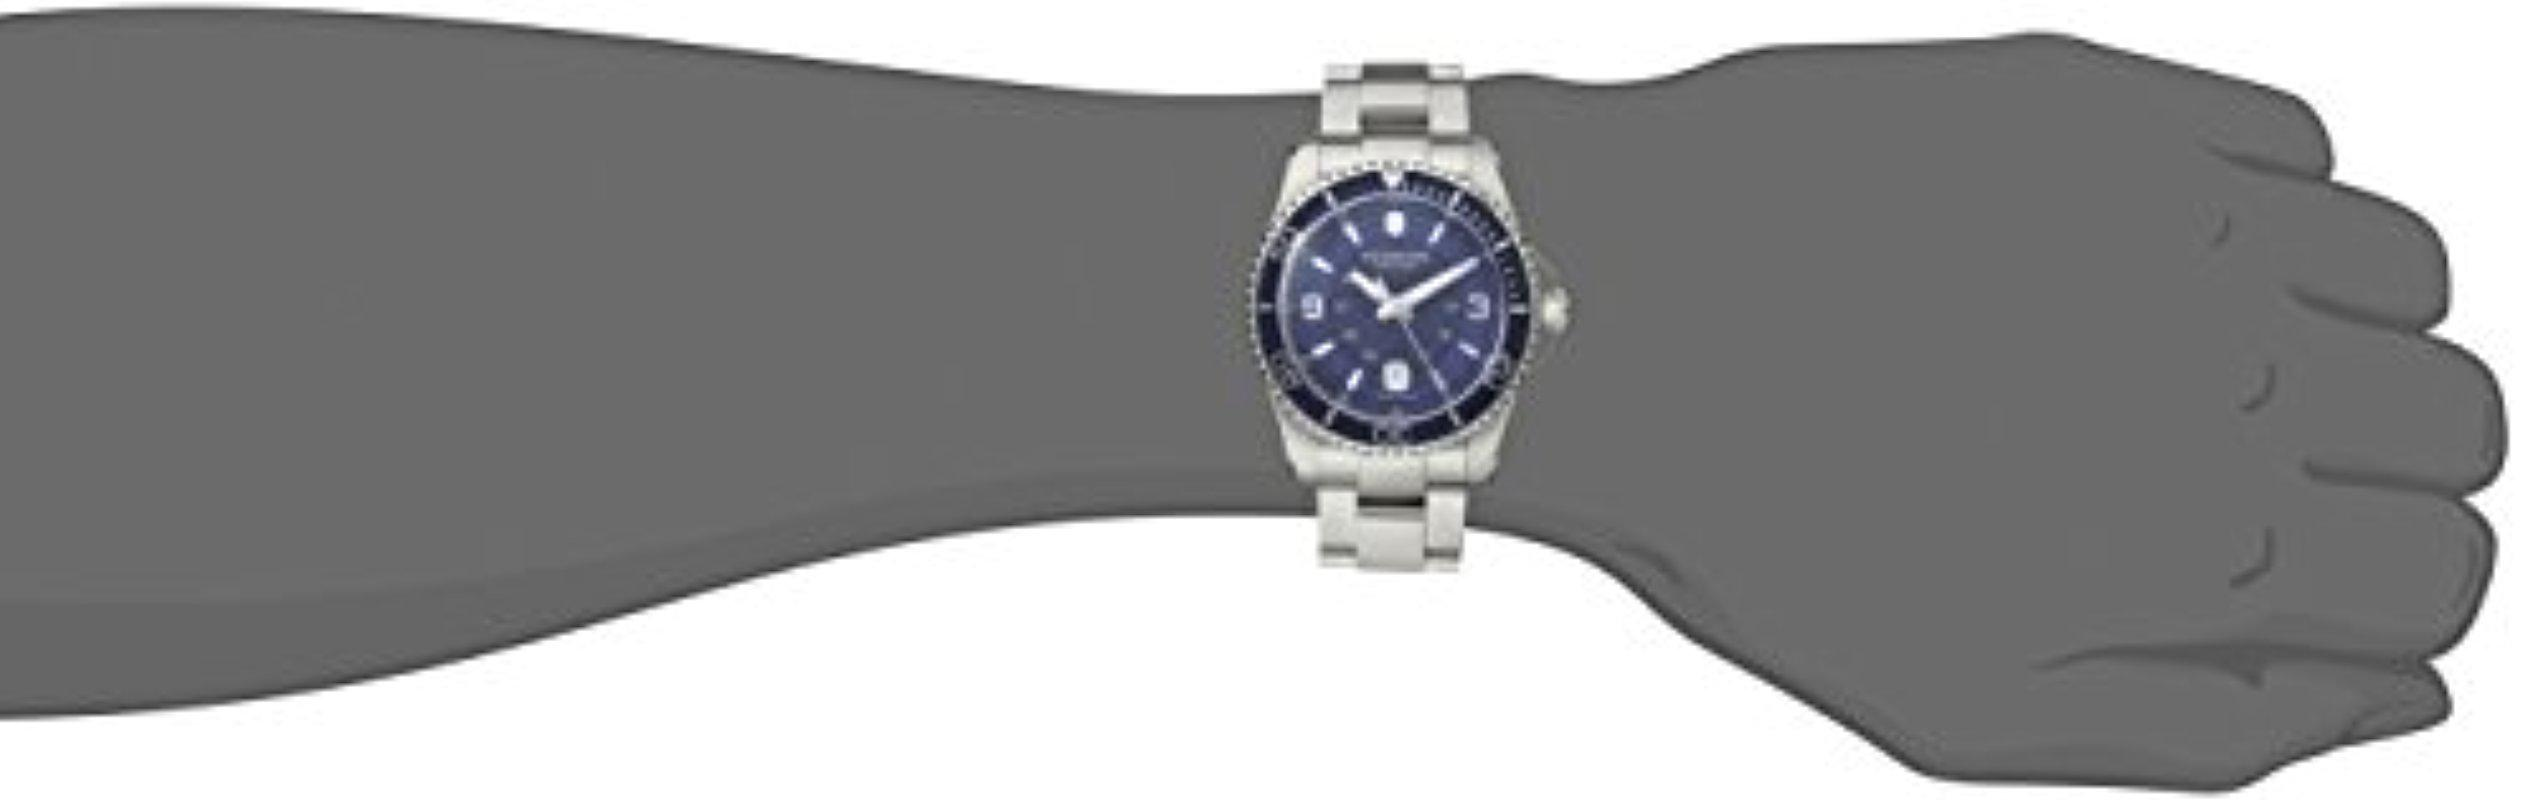 through dark beautiful glow watchshop numbers ladies silver the point clear blue good shine watch top along in of face com victorinox swiss which hands watches bezel maverick army dile with